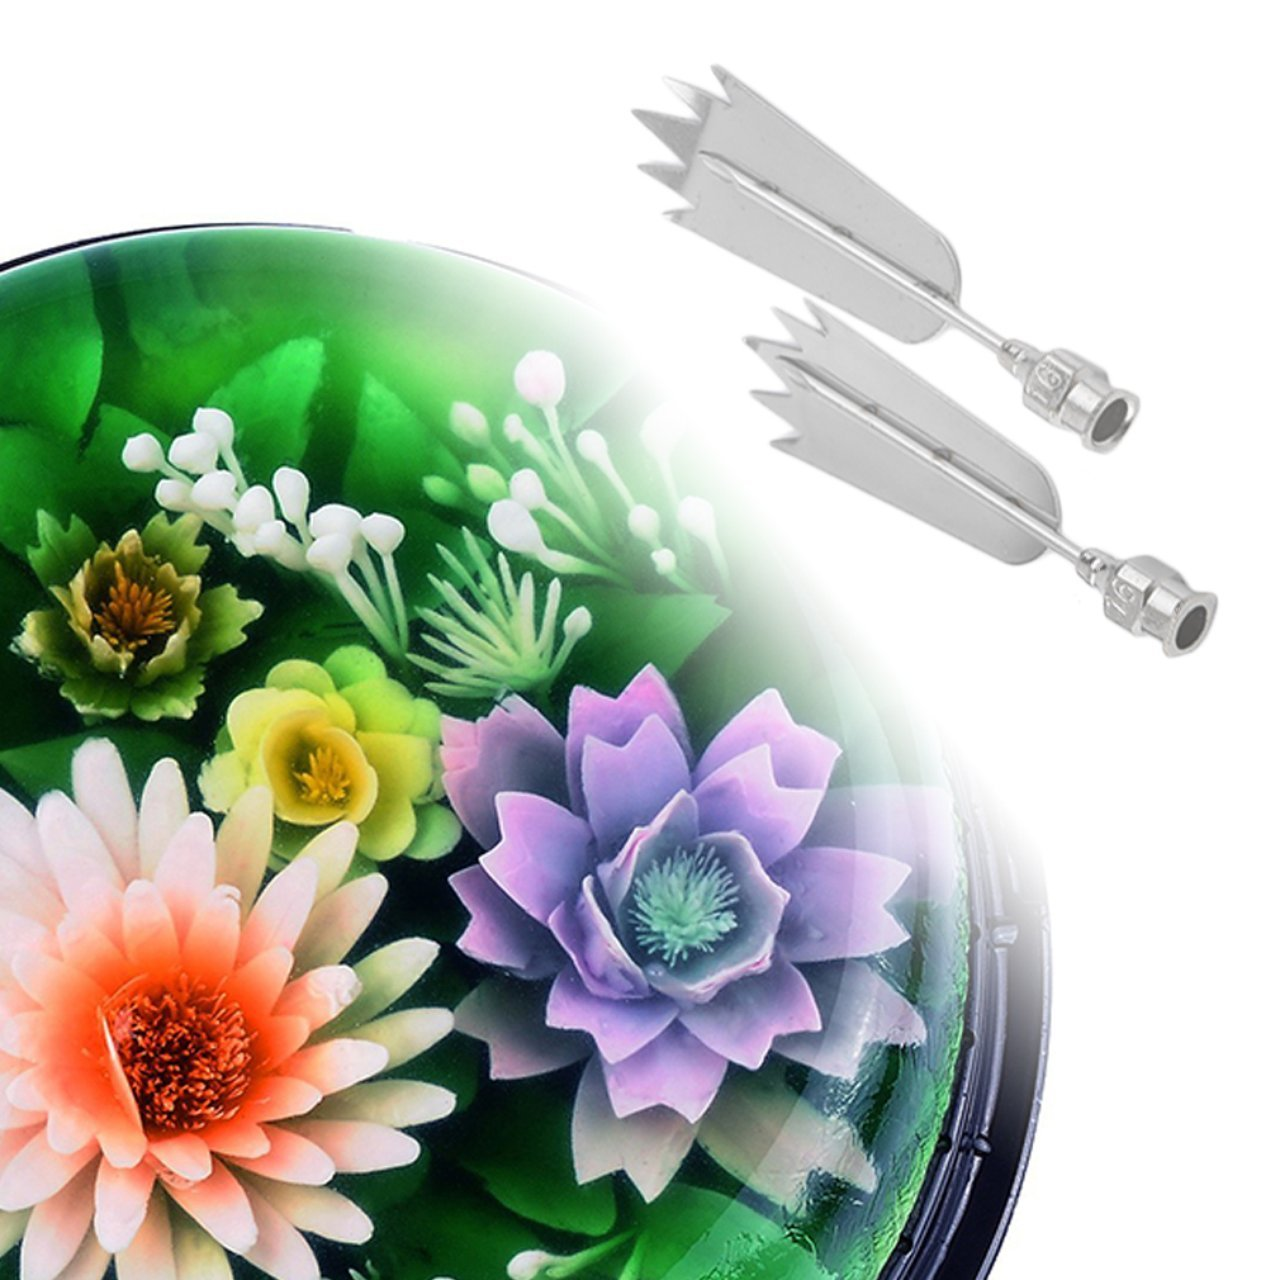 Creative Stainless Steel 3D Jelly Flower Art Tools Syringe 3D Gelatin Art Tools Jello Gubbins Set with Differnt Style